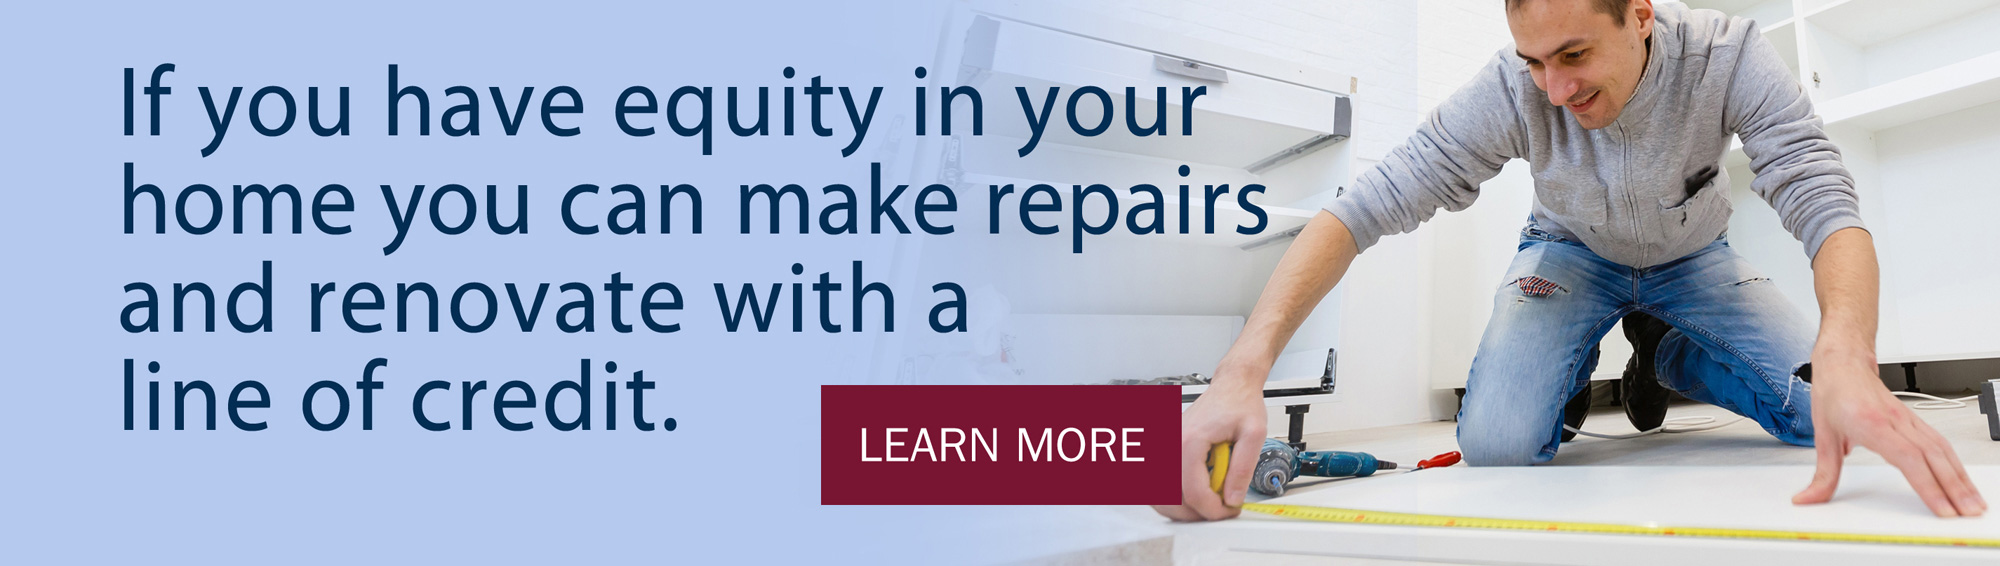 If you have equity in your home you can make repairs and renovate with a line of credit